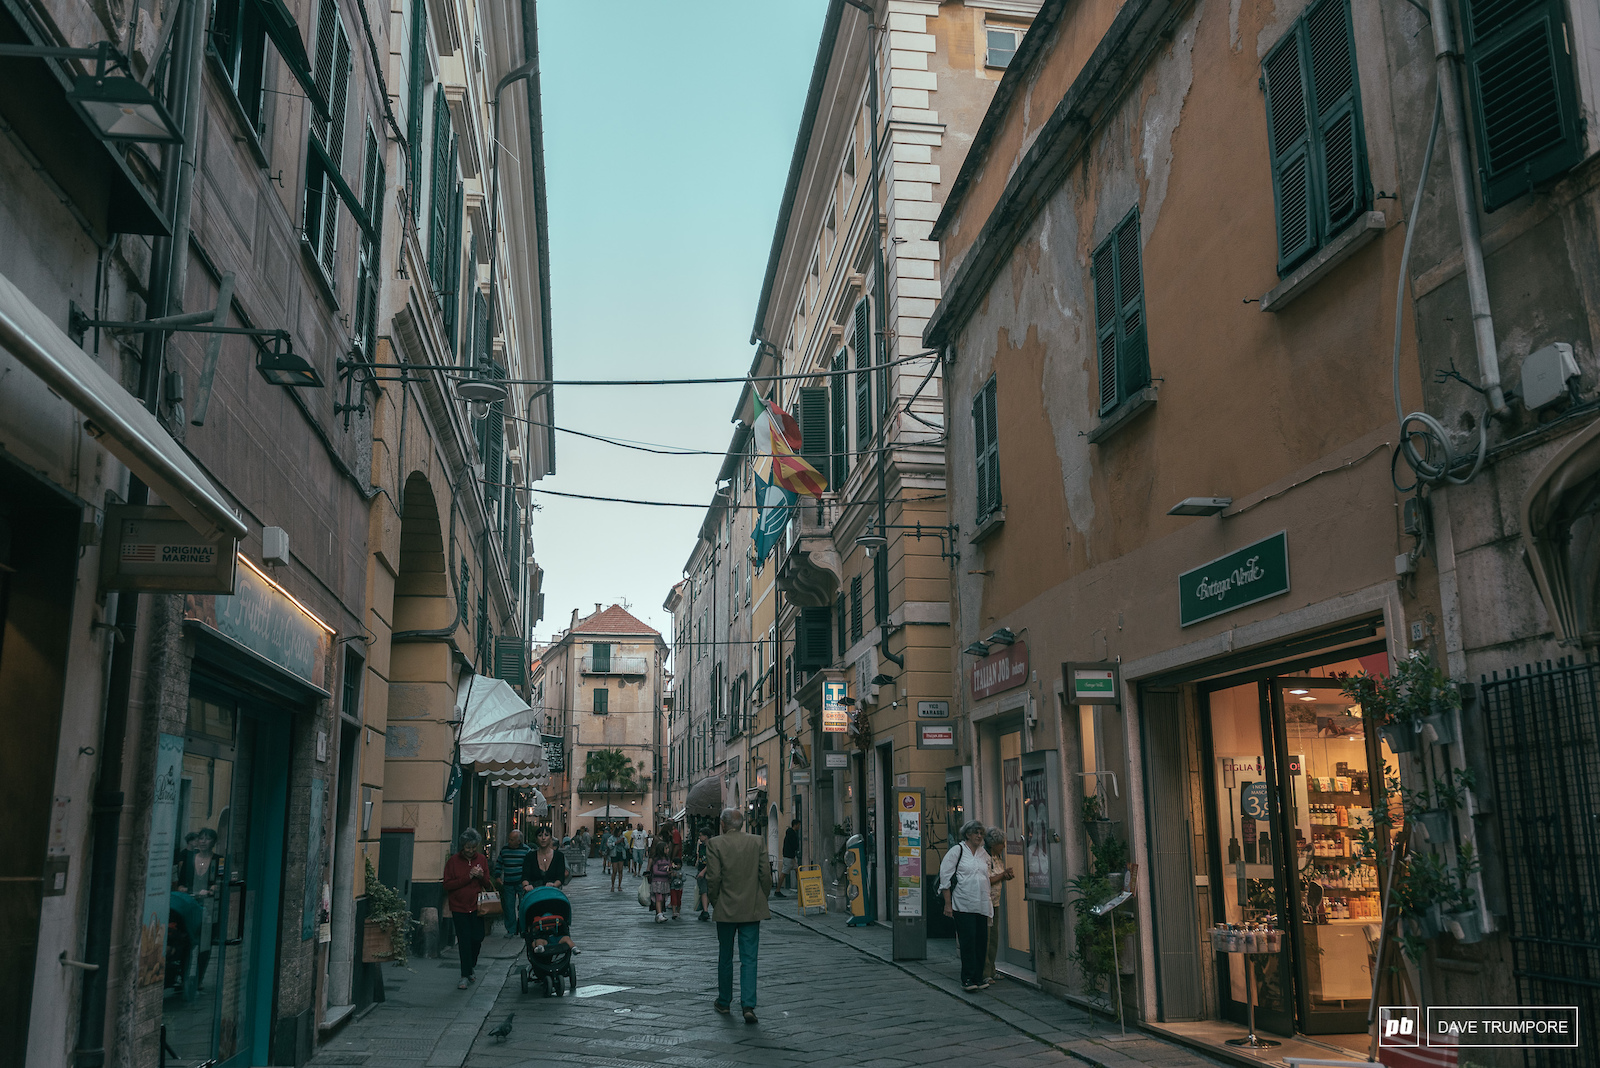 The coastal village of Finale Ligure is one of the more unique stops on the EWS as racers mix in with the hustle and bustle of everyday life.